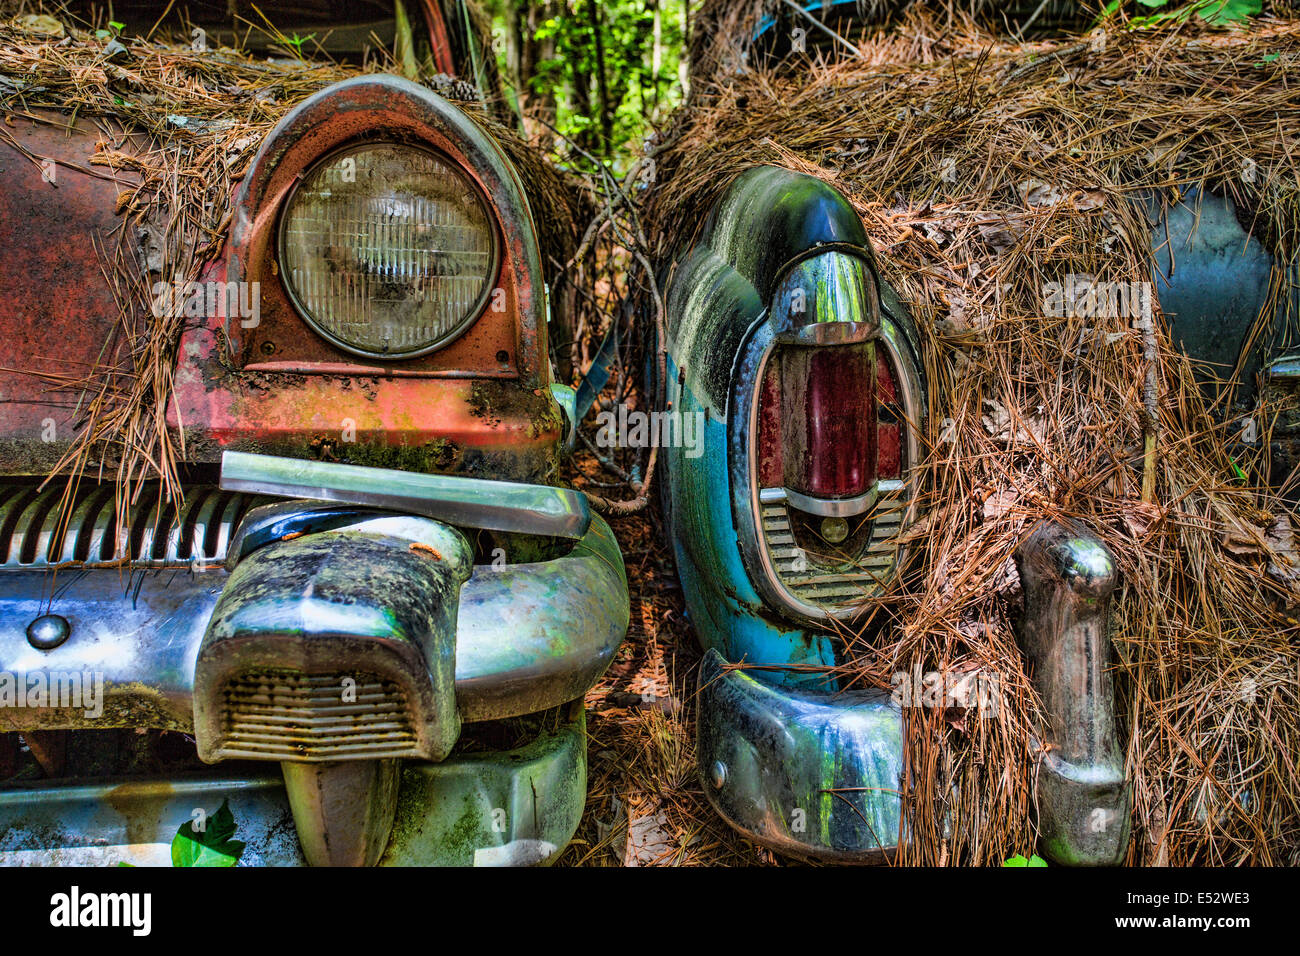 Rusted junk cars and trucks in Old Car City in White Georgia - Stock Image